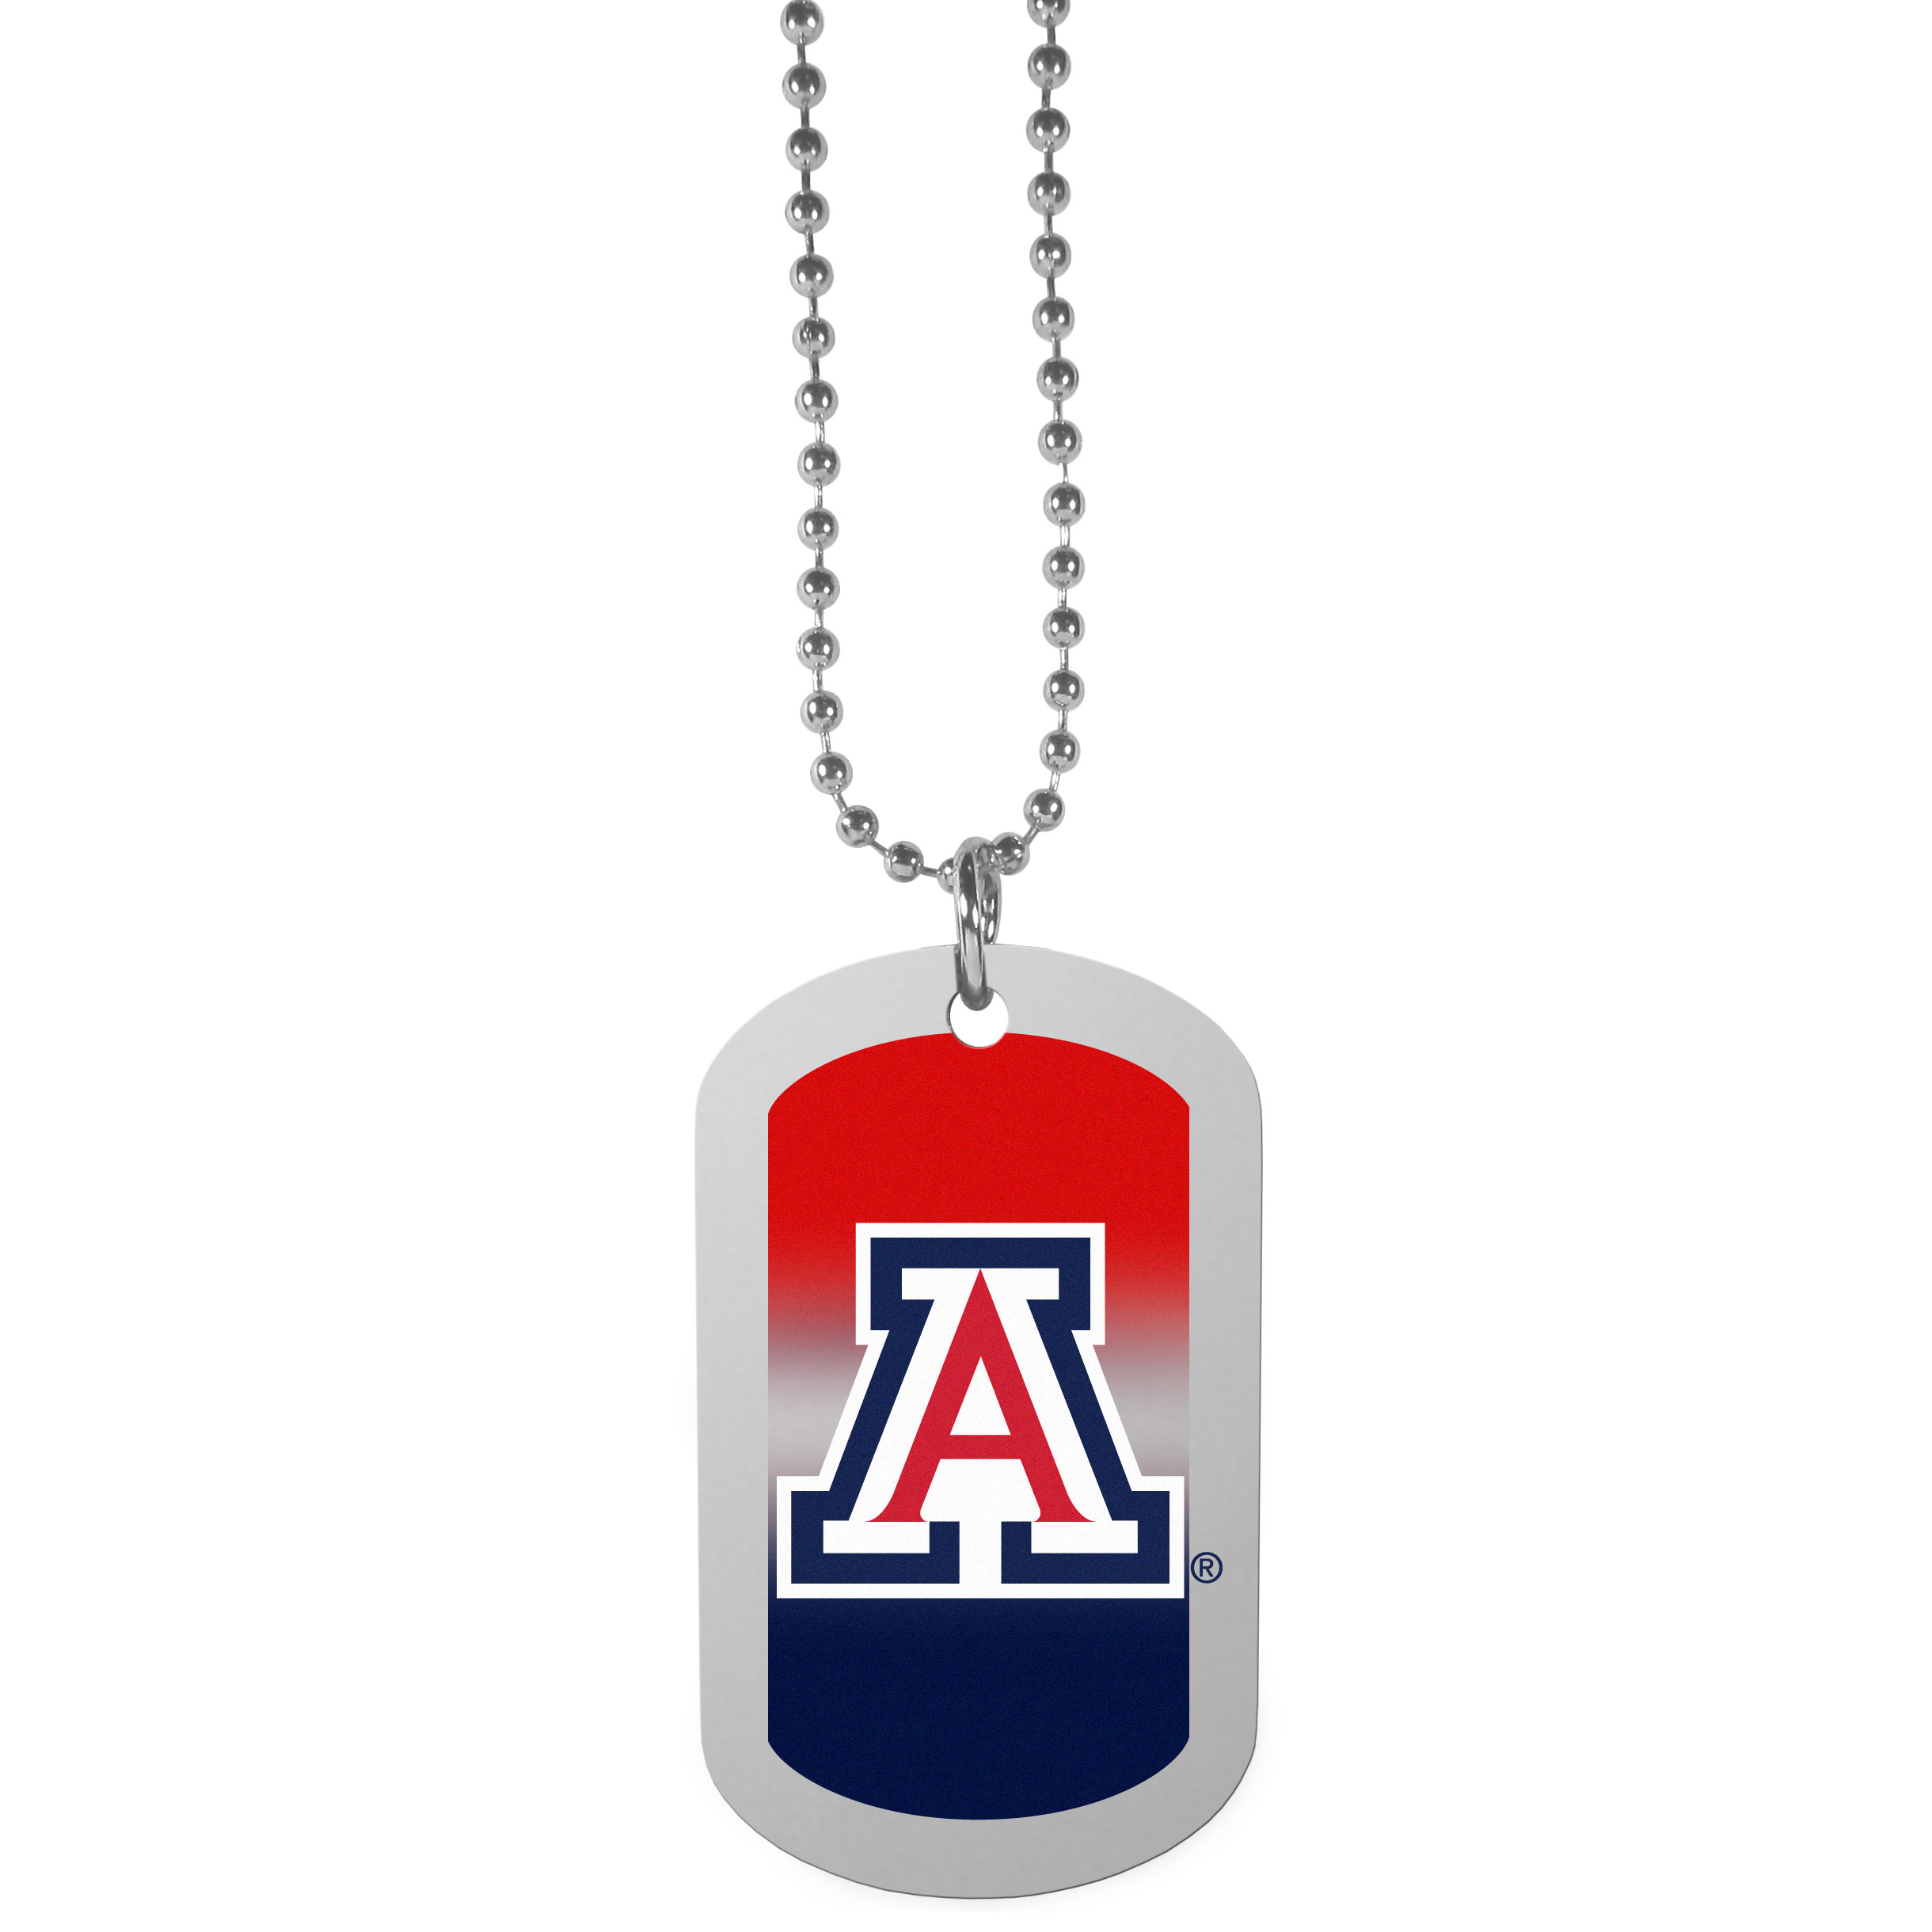 Arizona Wildcats Team Tag Necklace - Dog tag necklaces are a fashion statement that is here to stay. The sporty version of the classic tag features a gradient print in team colors featuring a full color team logo over a high polish tag to create a bold and sporty look. The tag comes on a 26 inch ball chain with a ball and joint clasp. Any Arizona Wildcats would be proud to wear this attractive fashion accessory.